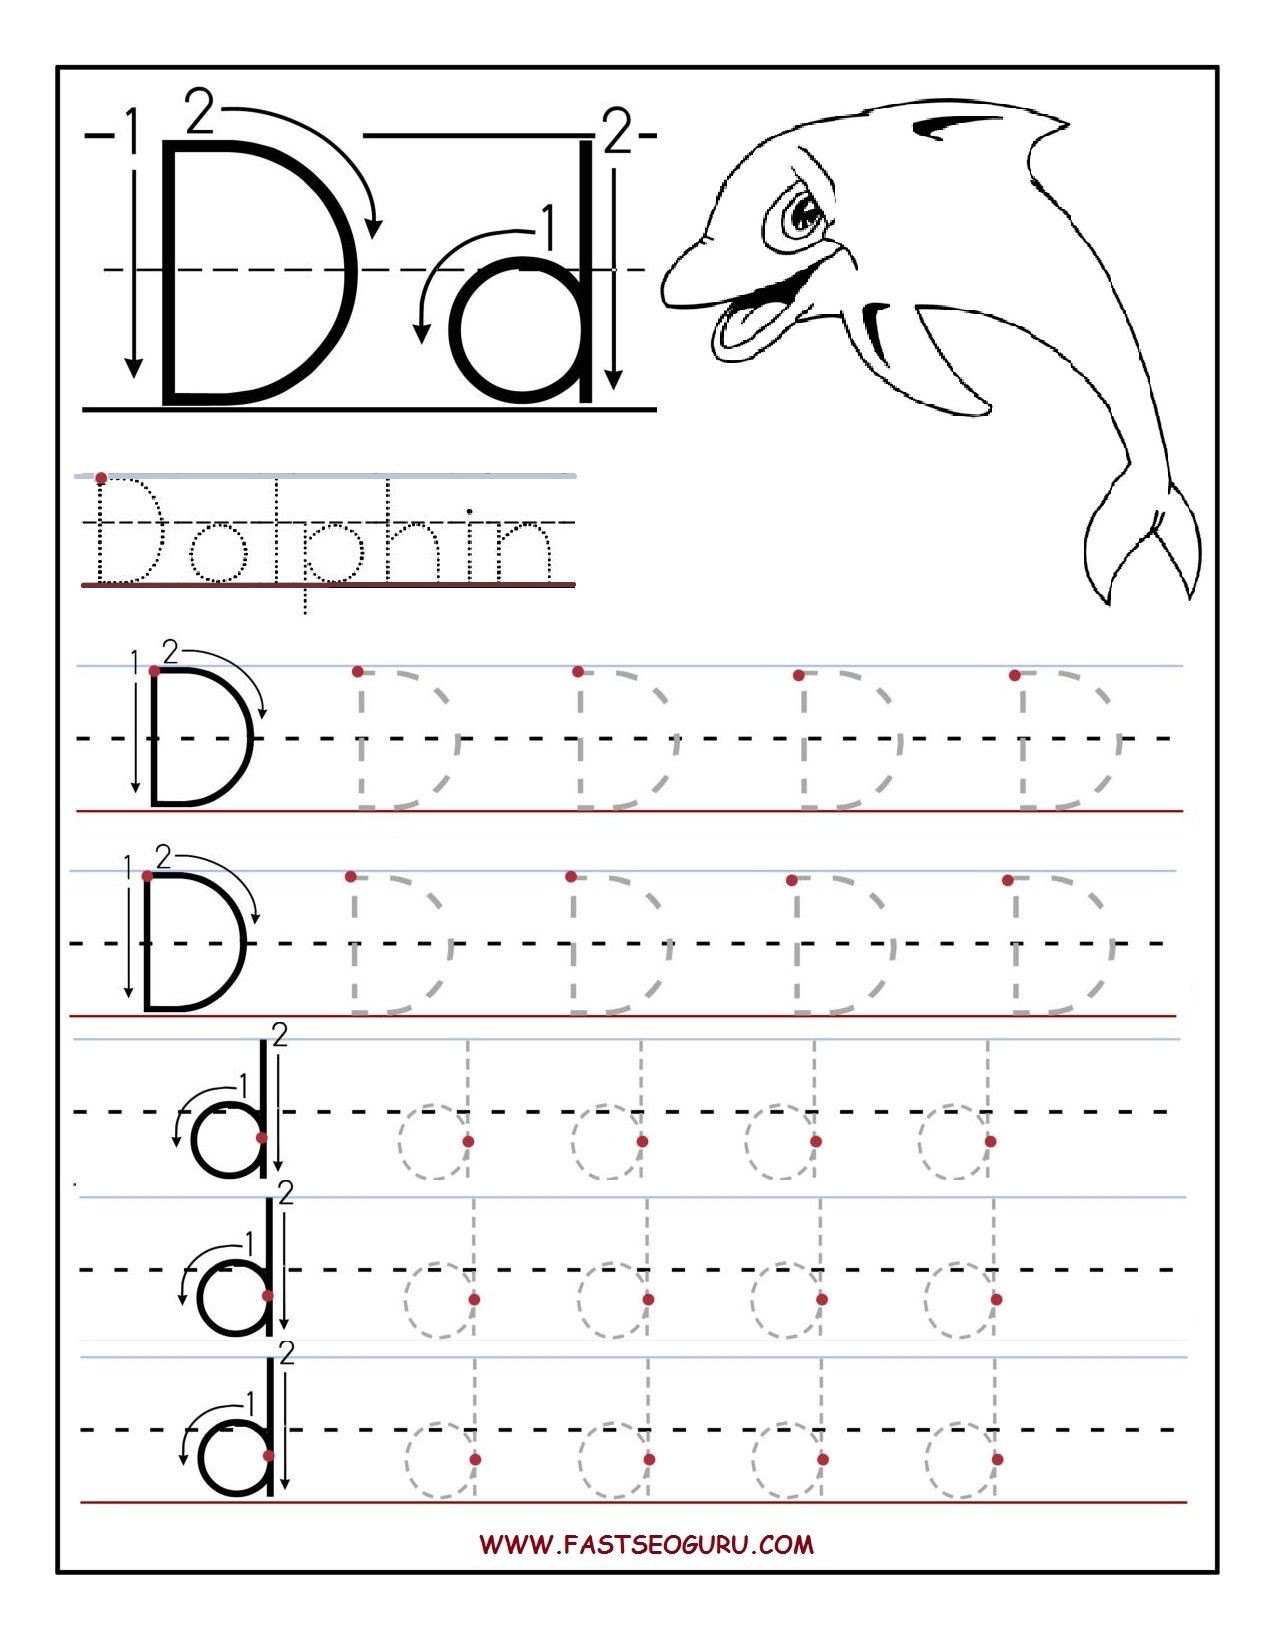 Letter D Worksheet Preschool Preschool Alphabet Worksheets Printables Printable Letter A